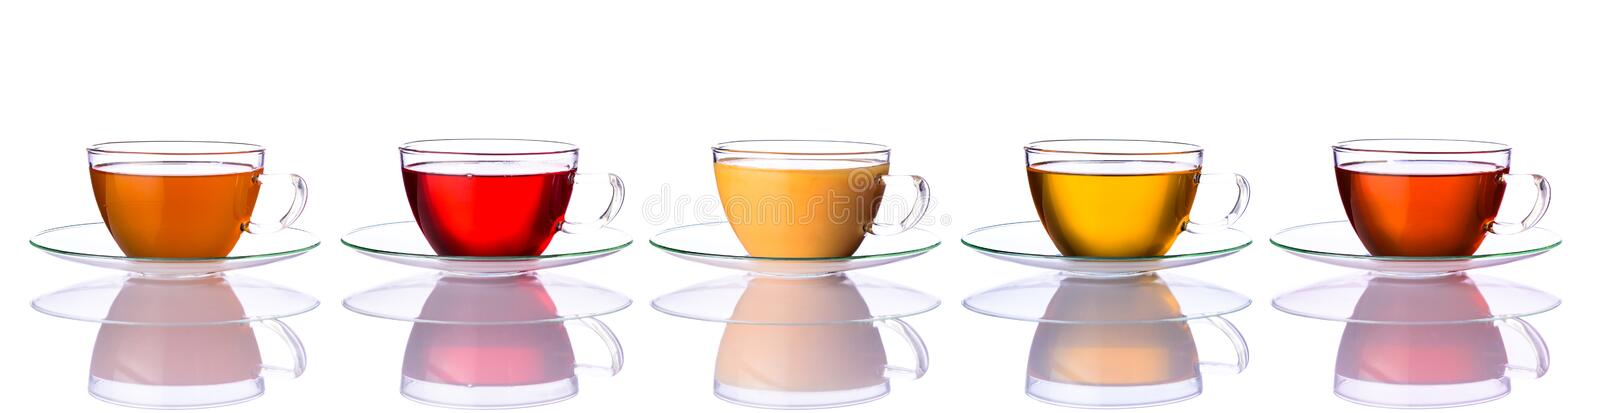 Collage of Tea Cups. Tea cups in collage with different types of tea isolated on white background